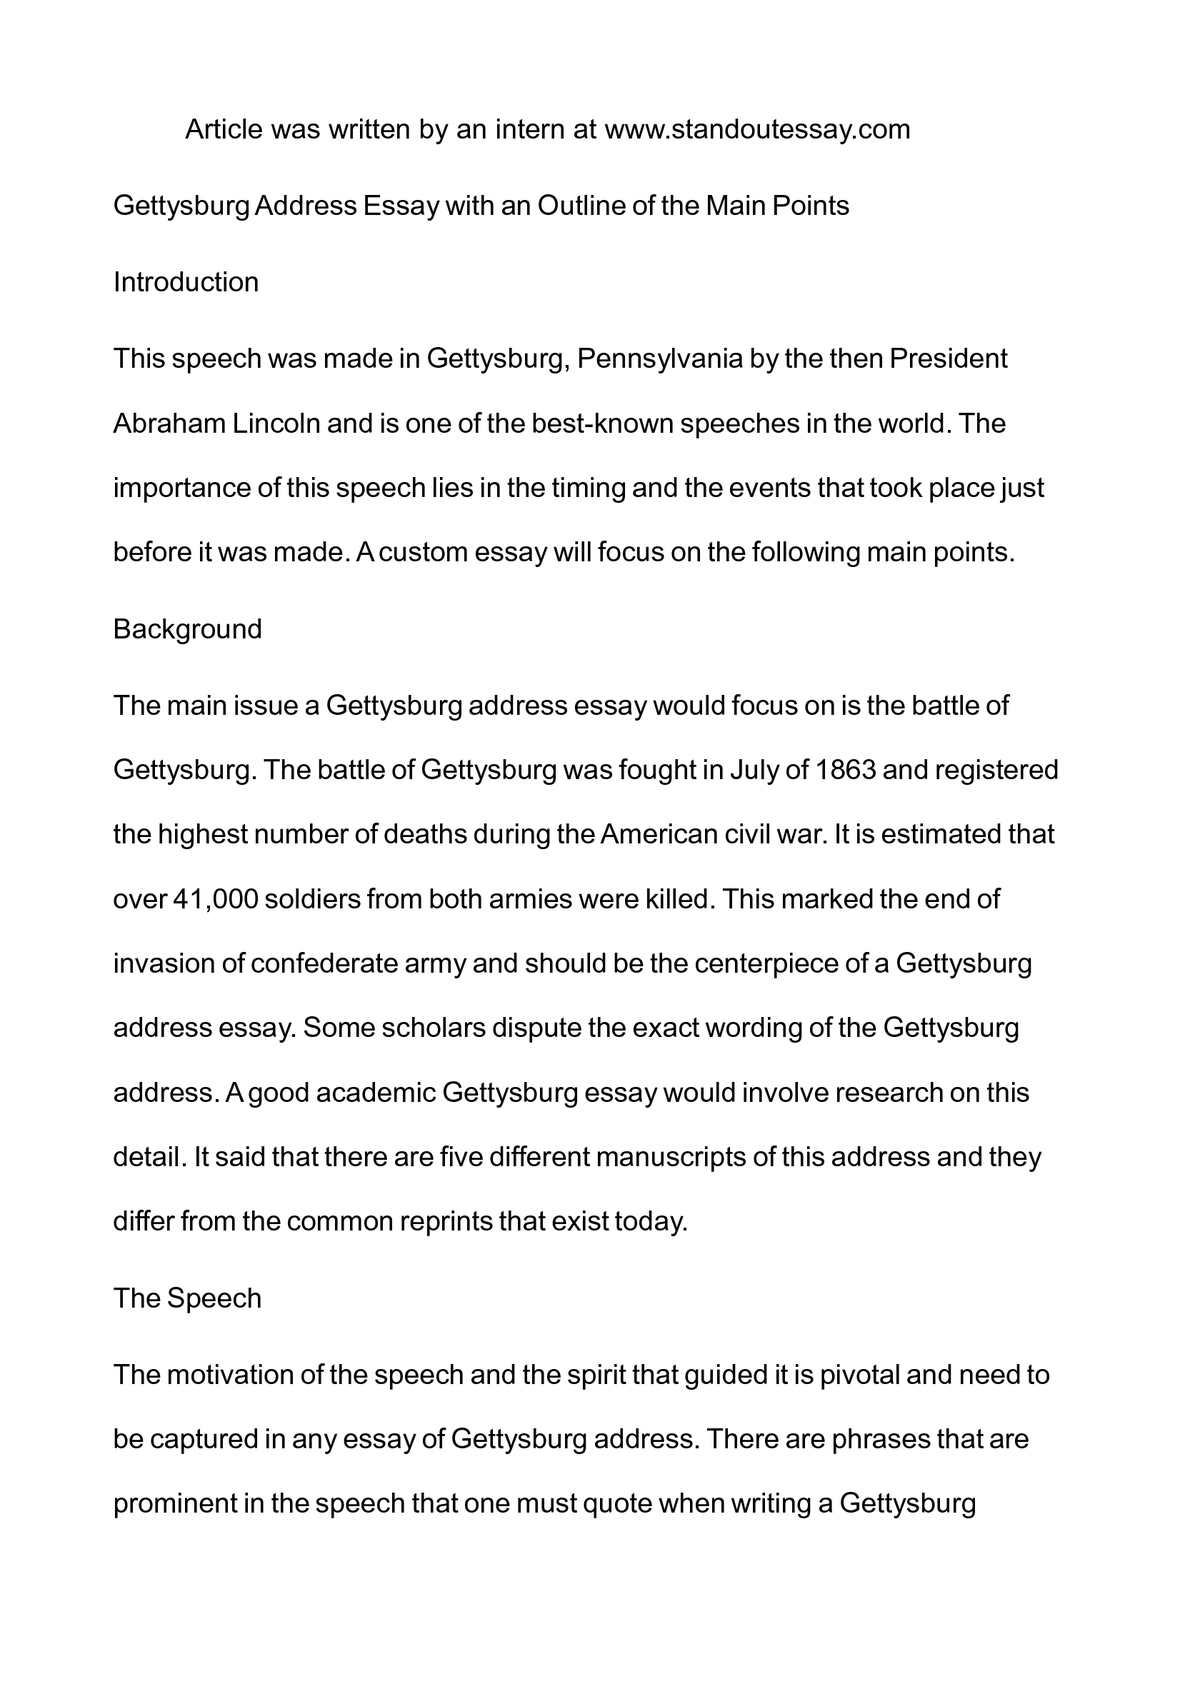 essay on the gettysburg address calaméo gettysburg address essay calaméo gettysburg address essay an outline of the main calaméo gettysburg